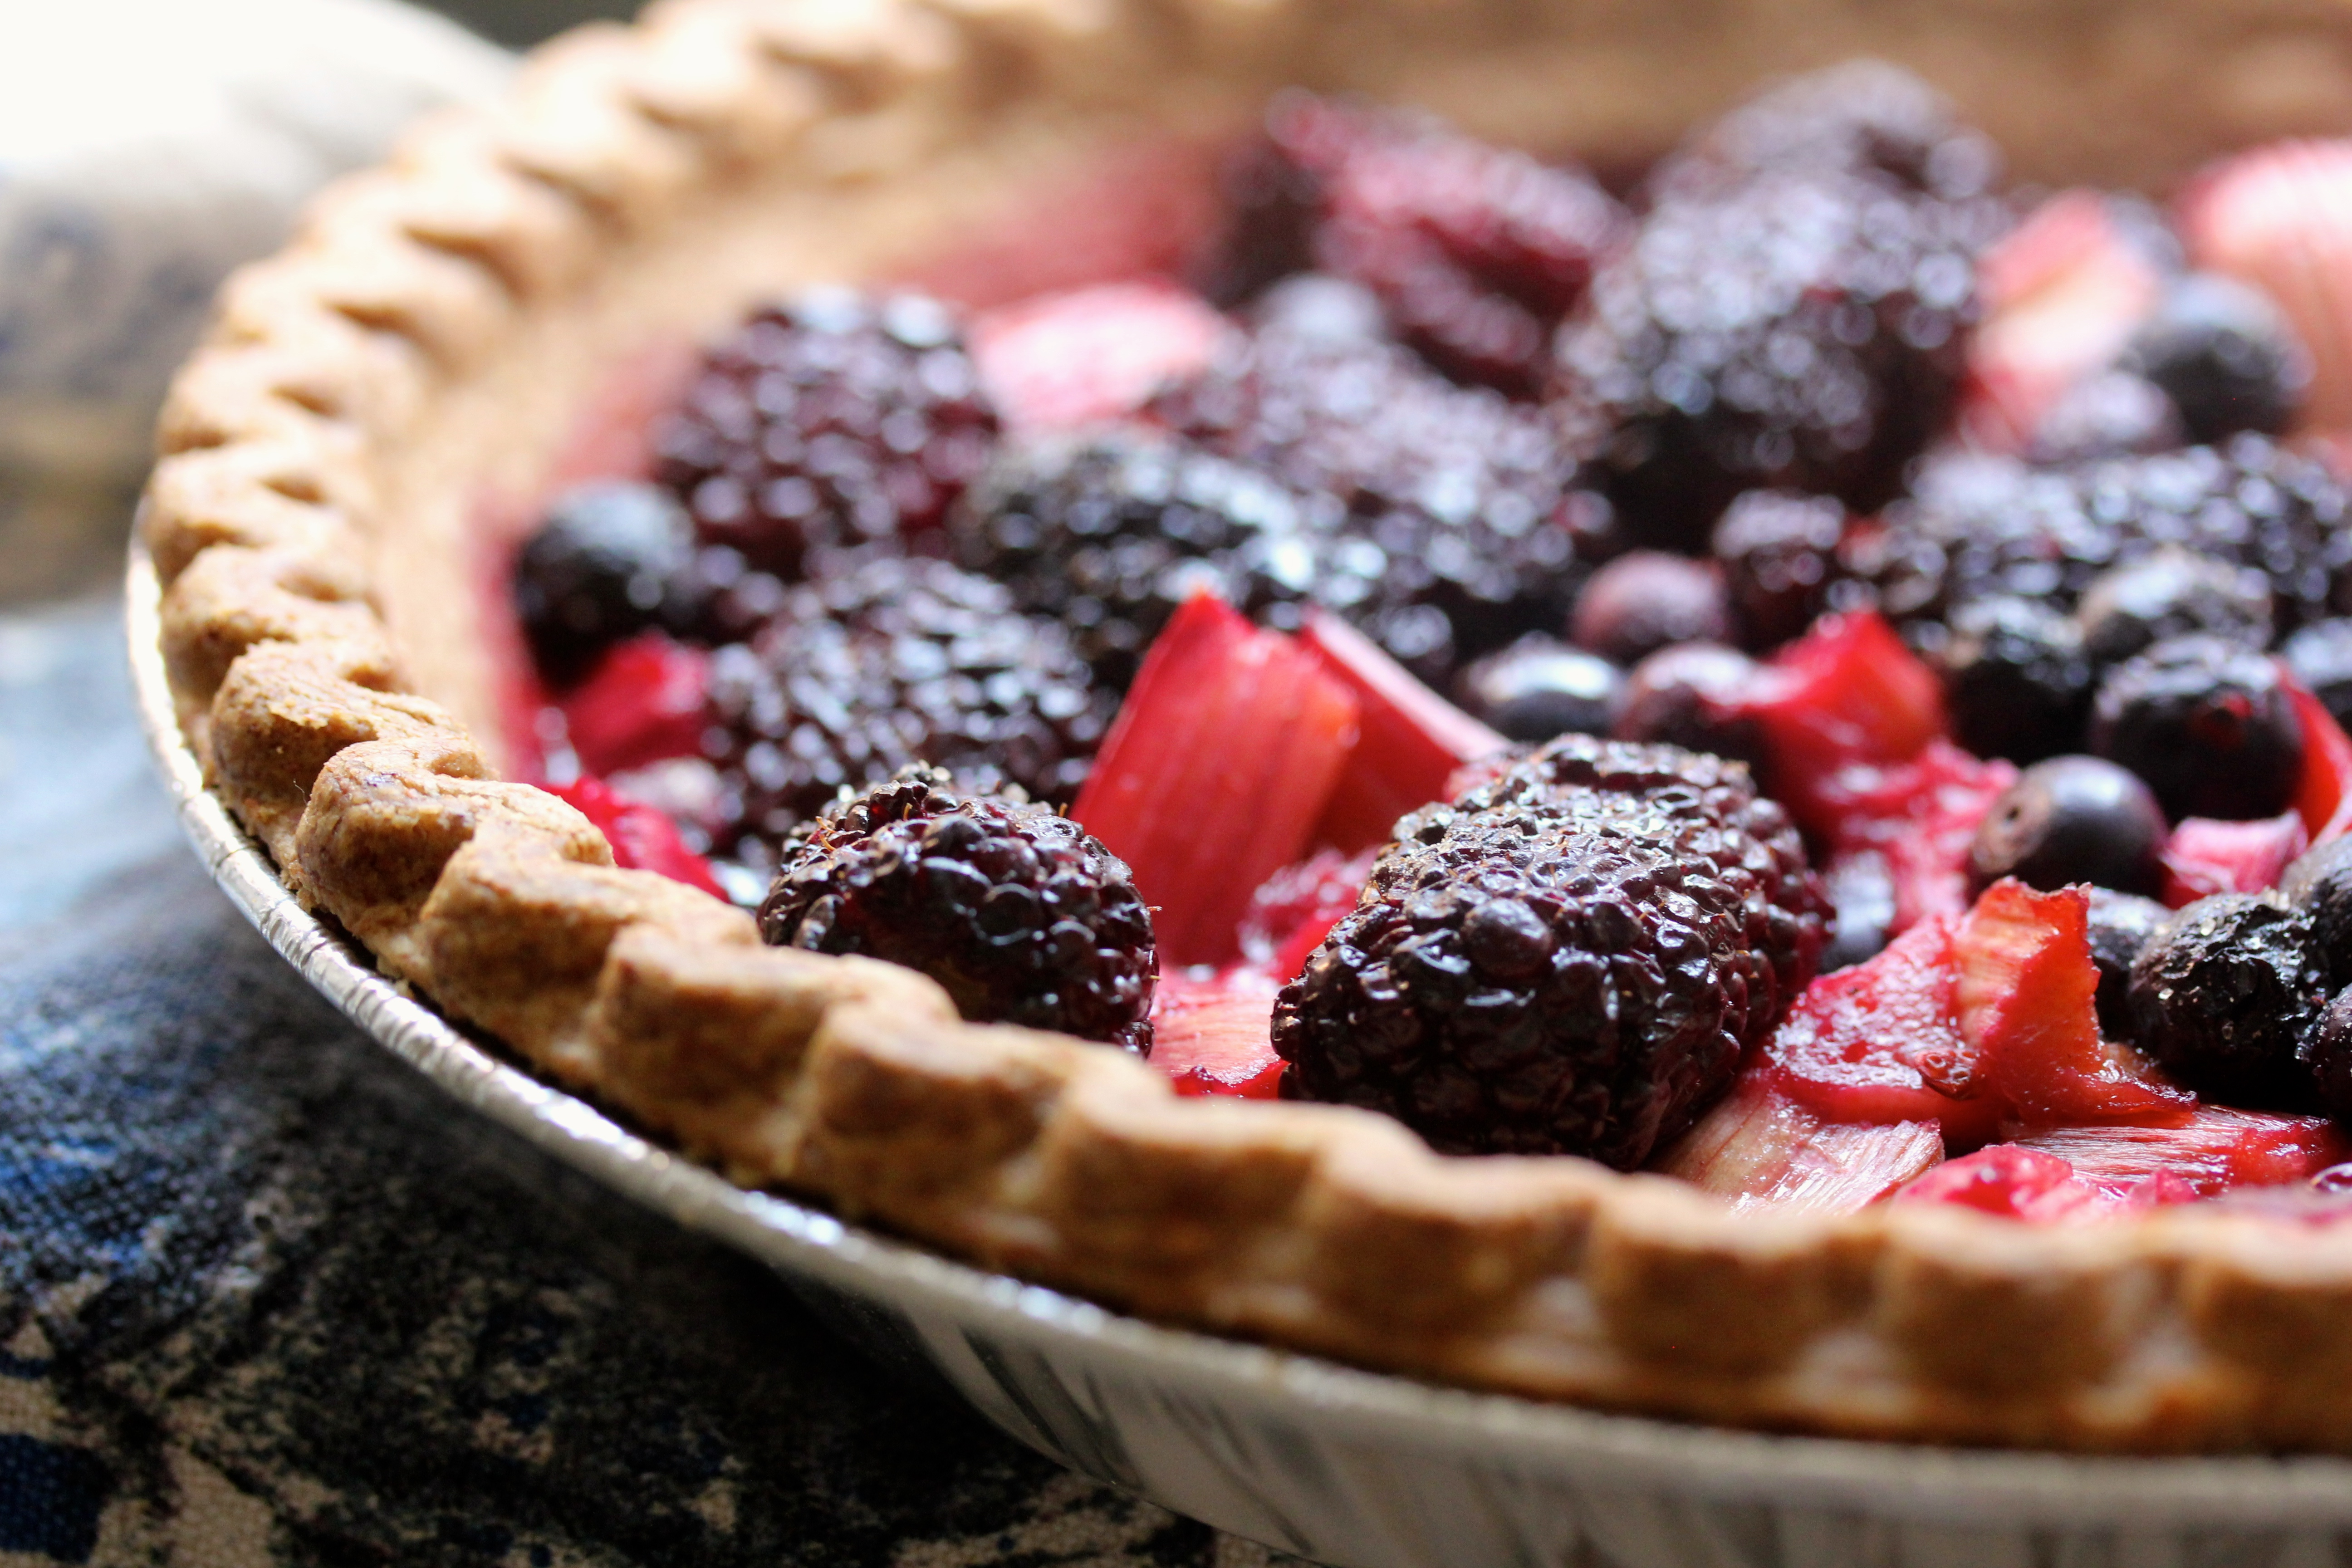 rhubarb and blackberry pie